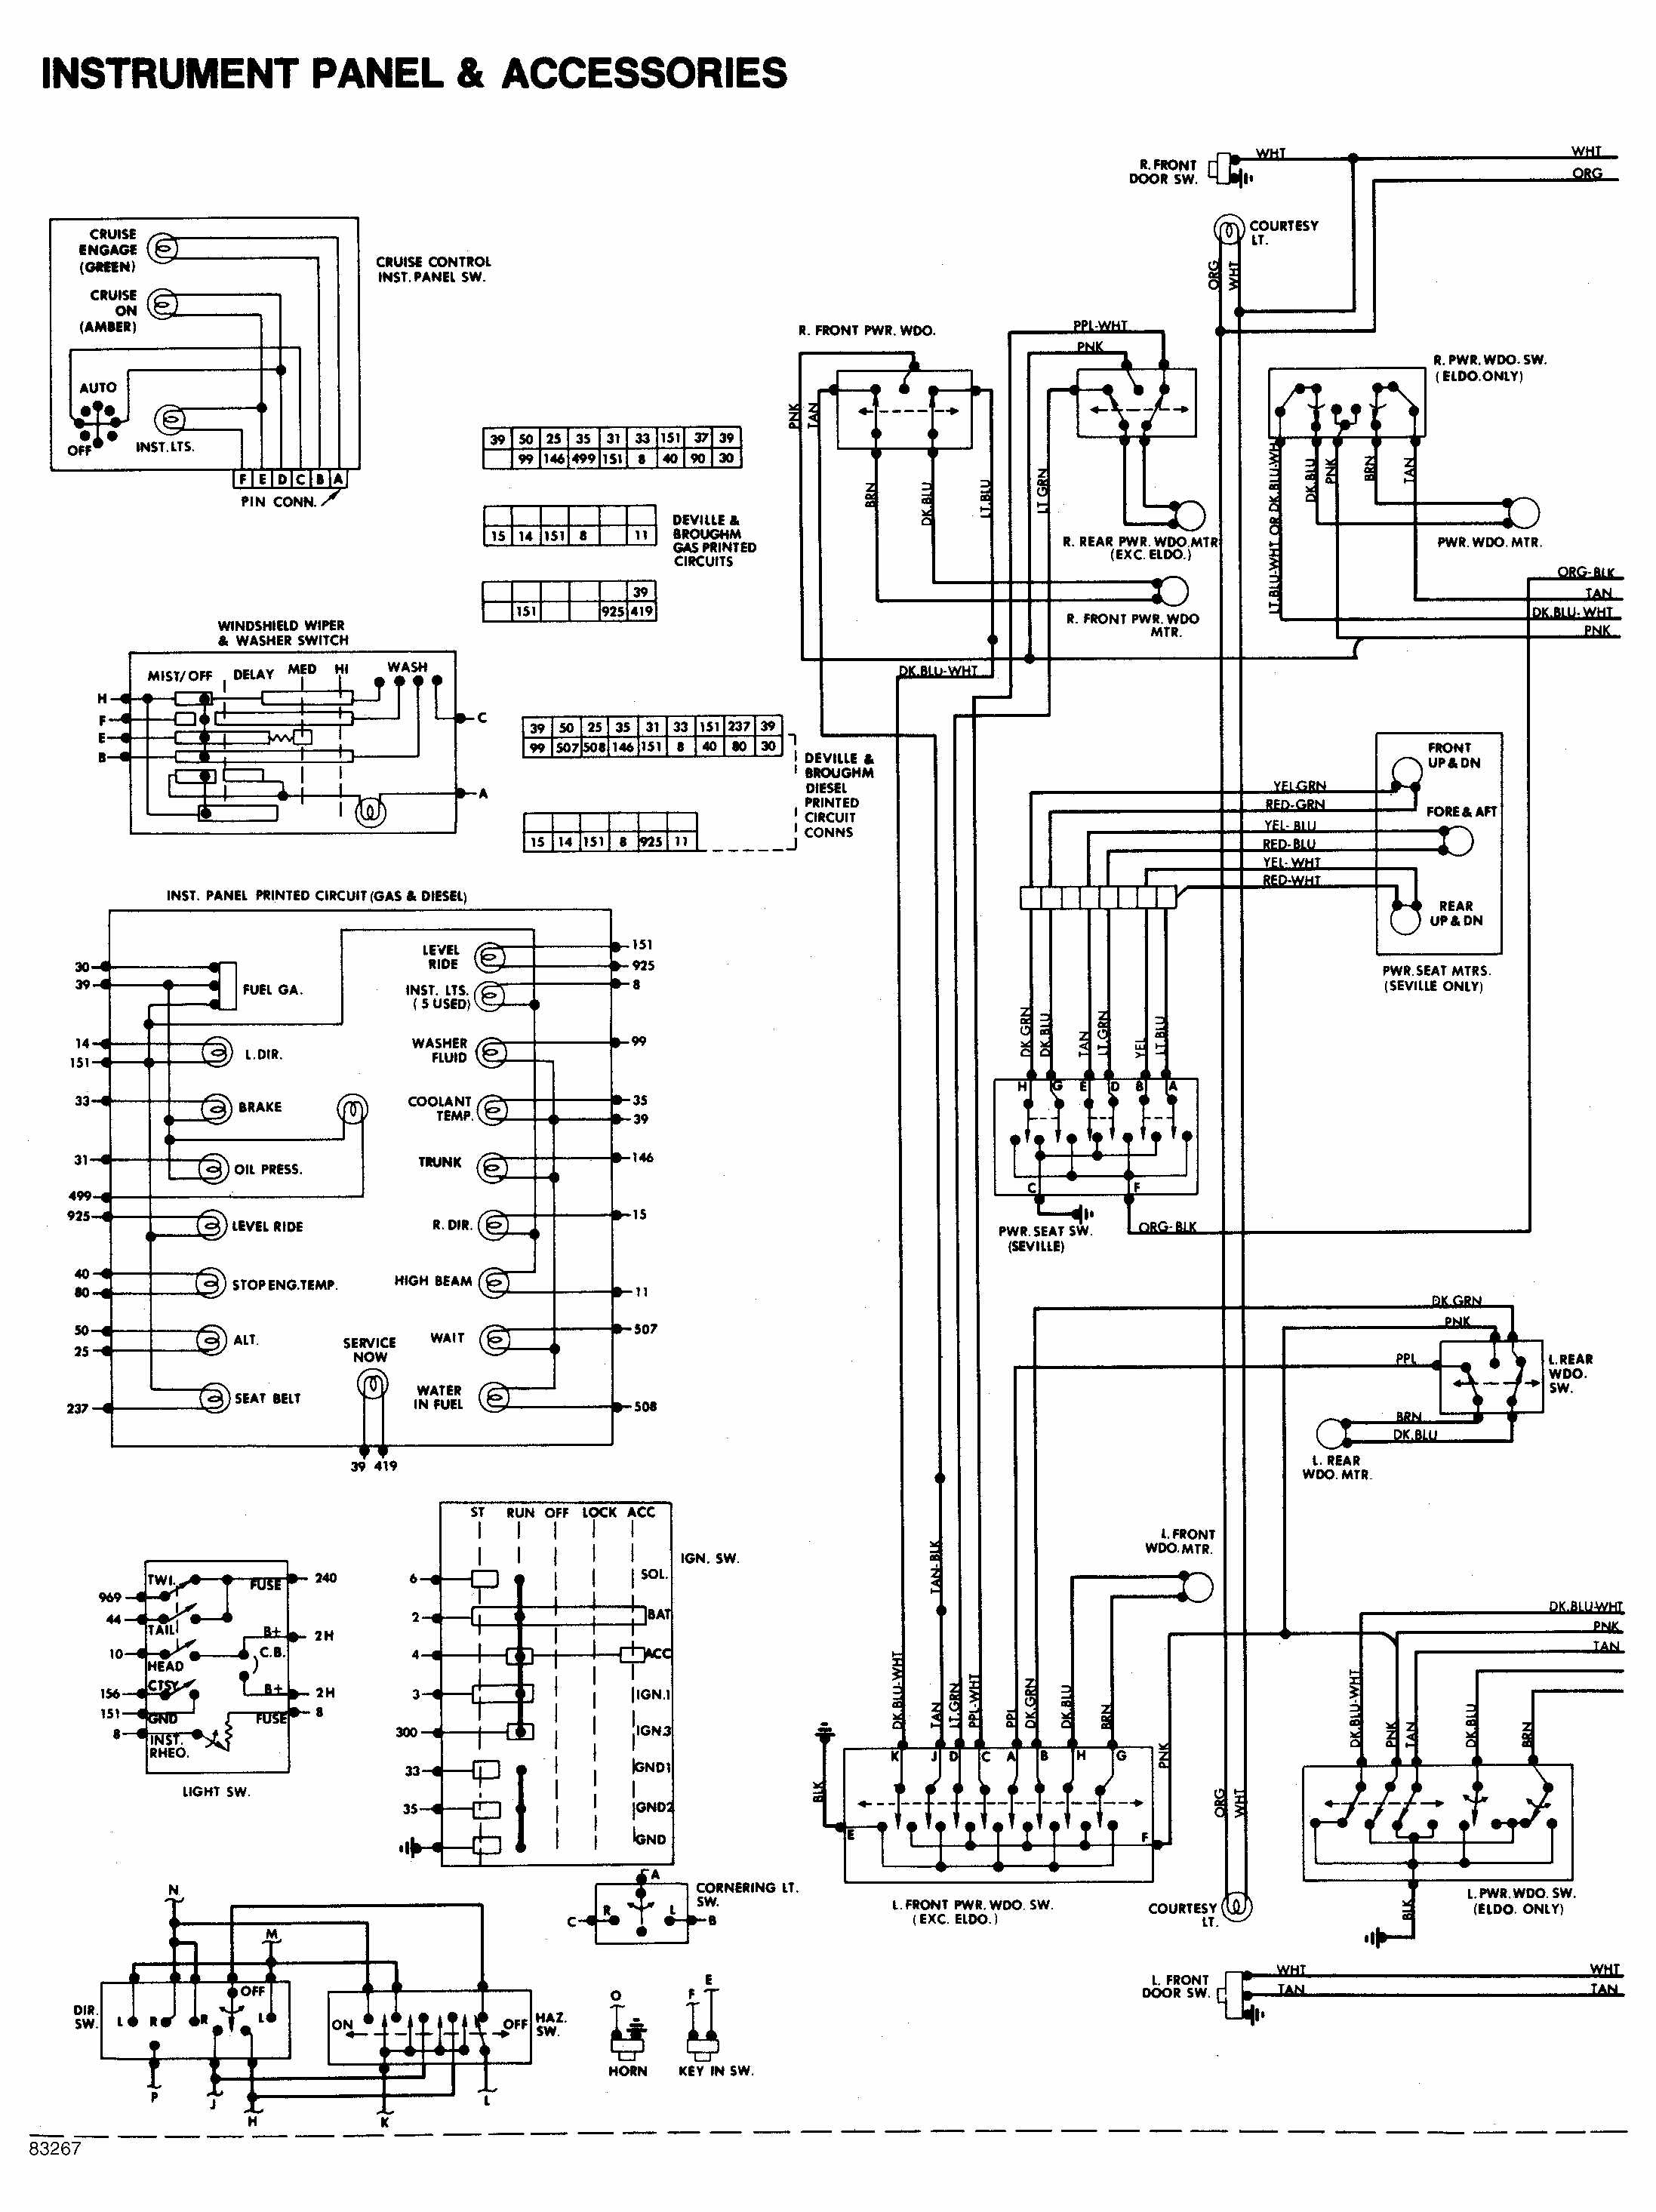 84 El Camino Engine Wiring Diagram Everything About Fuse Box Chevy Diagrams Rh Wizard Com 1986 Schematic